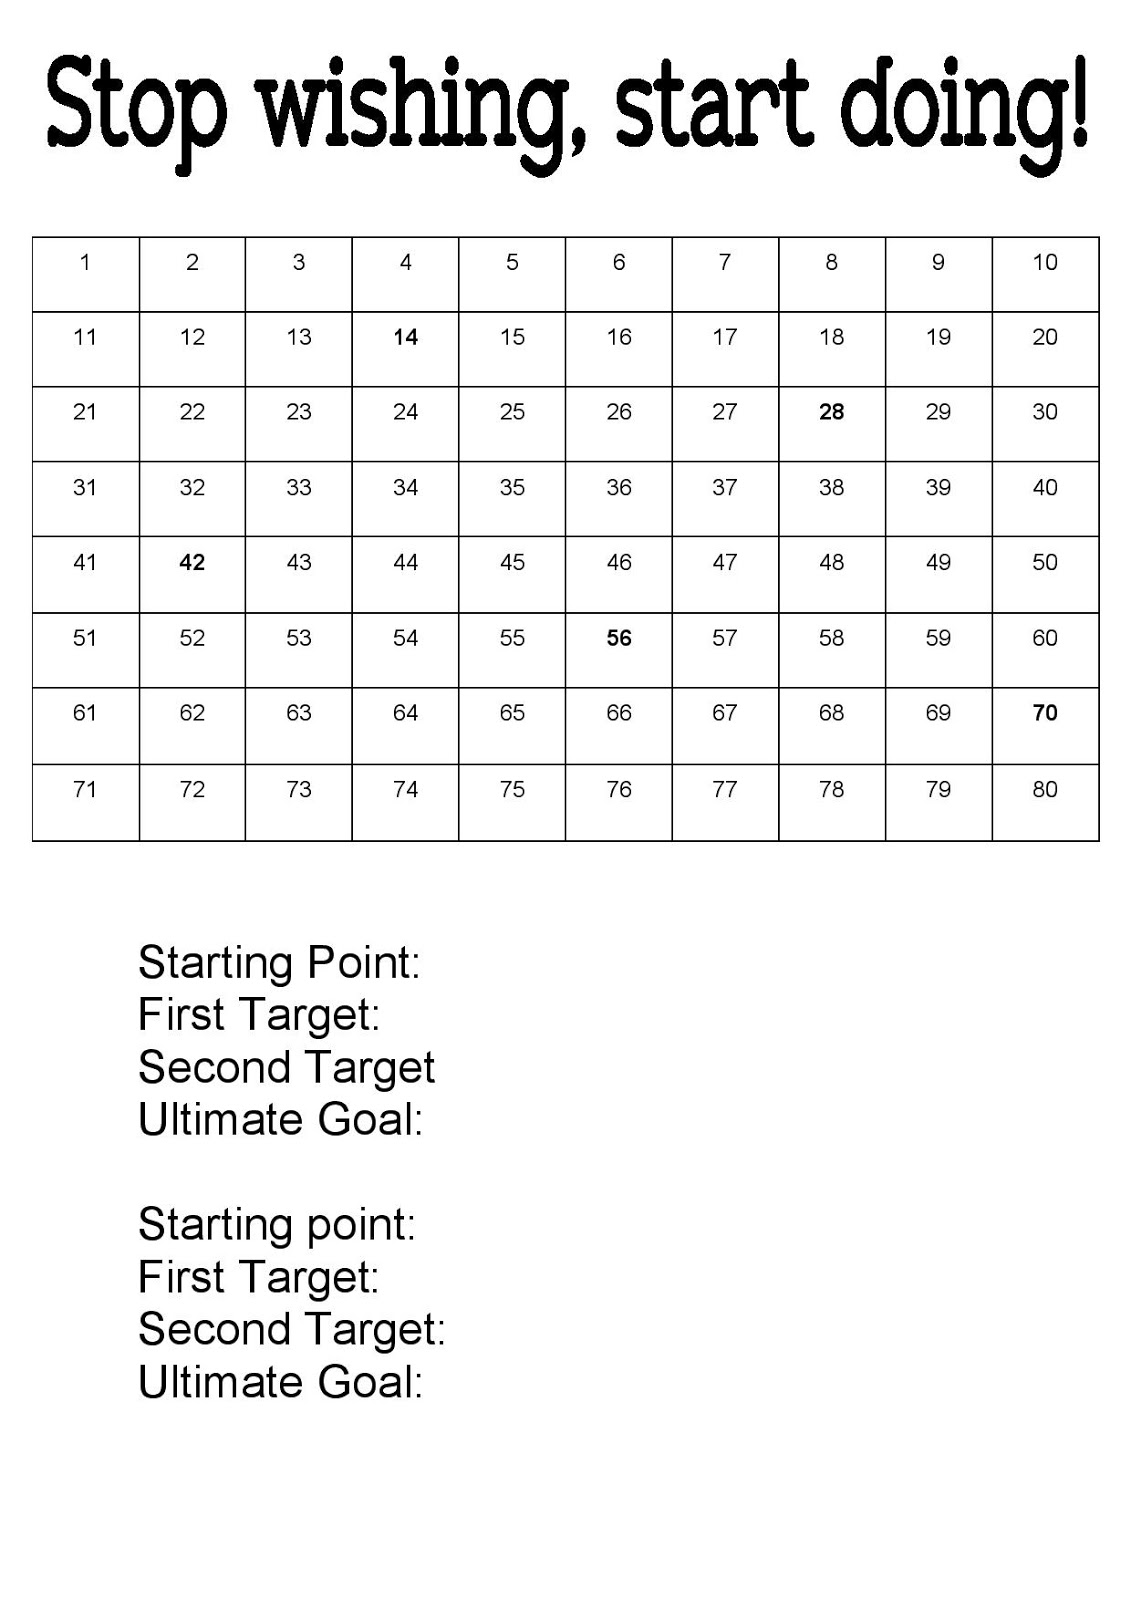 12 month weight loss tracker download to insanity & back.